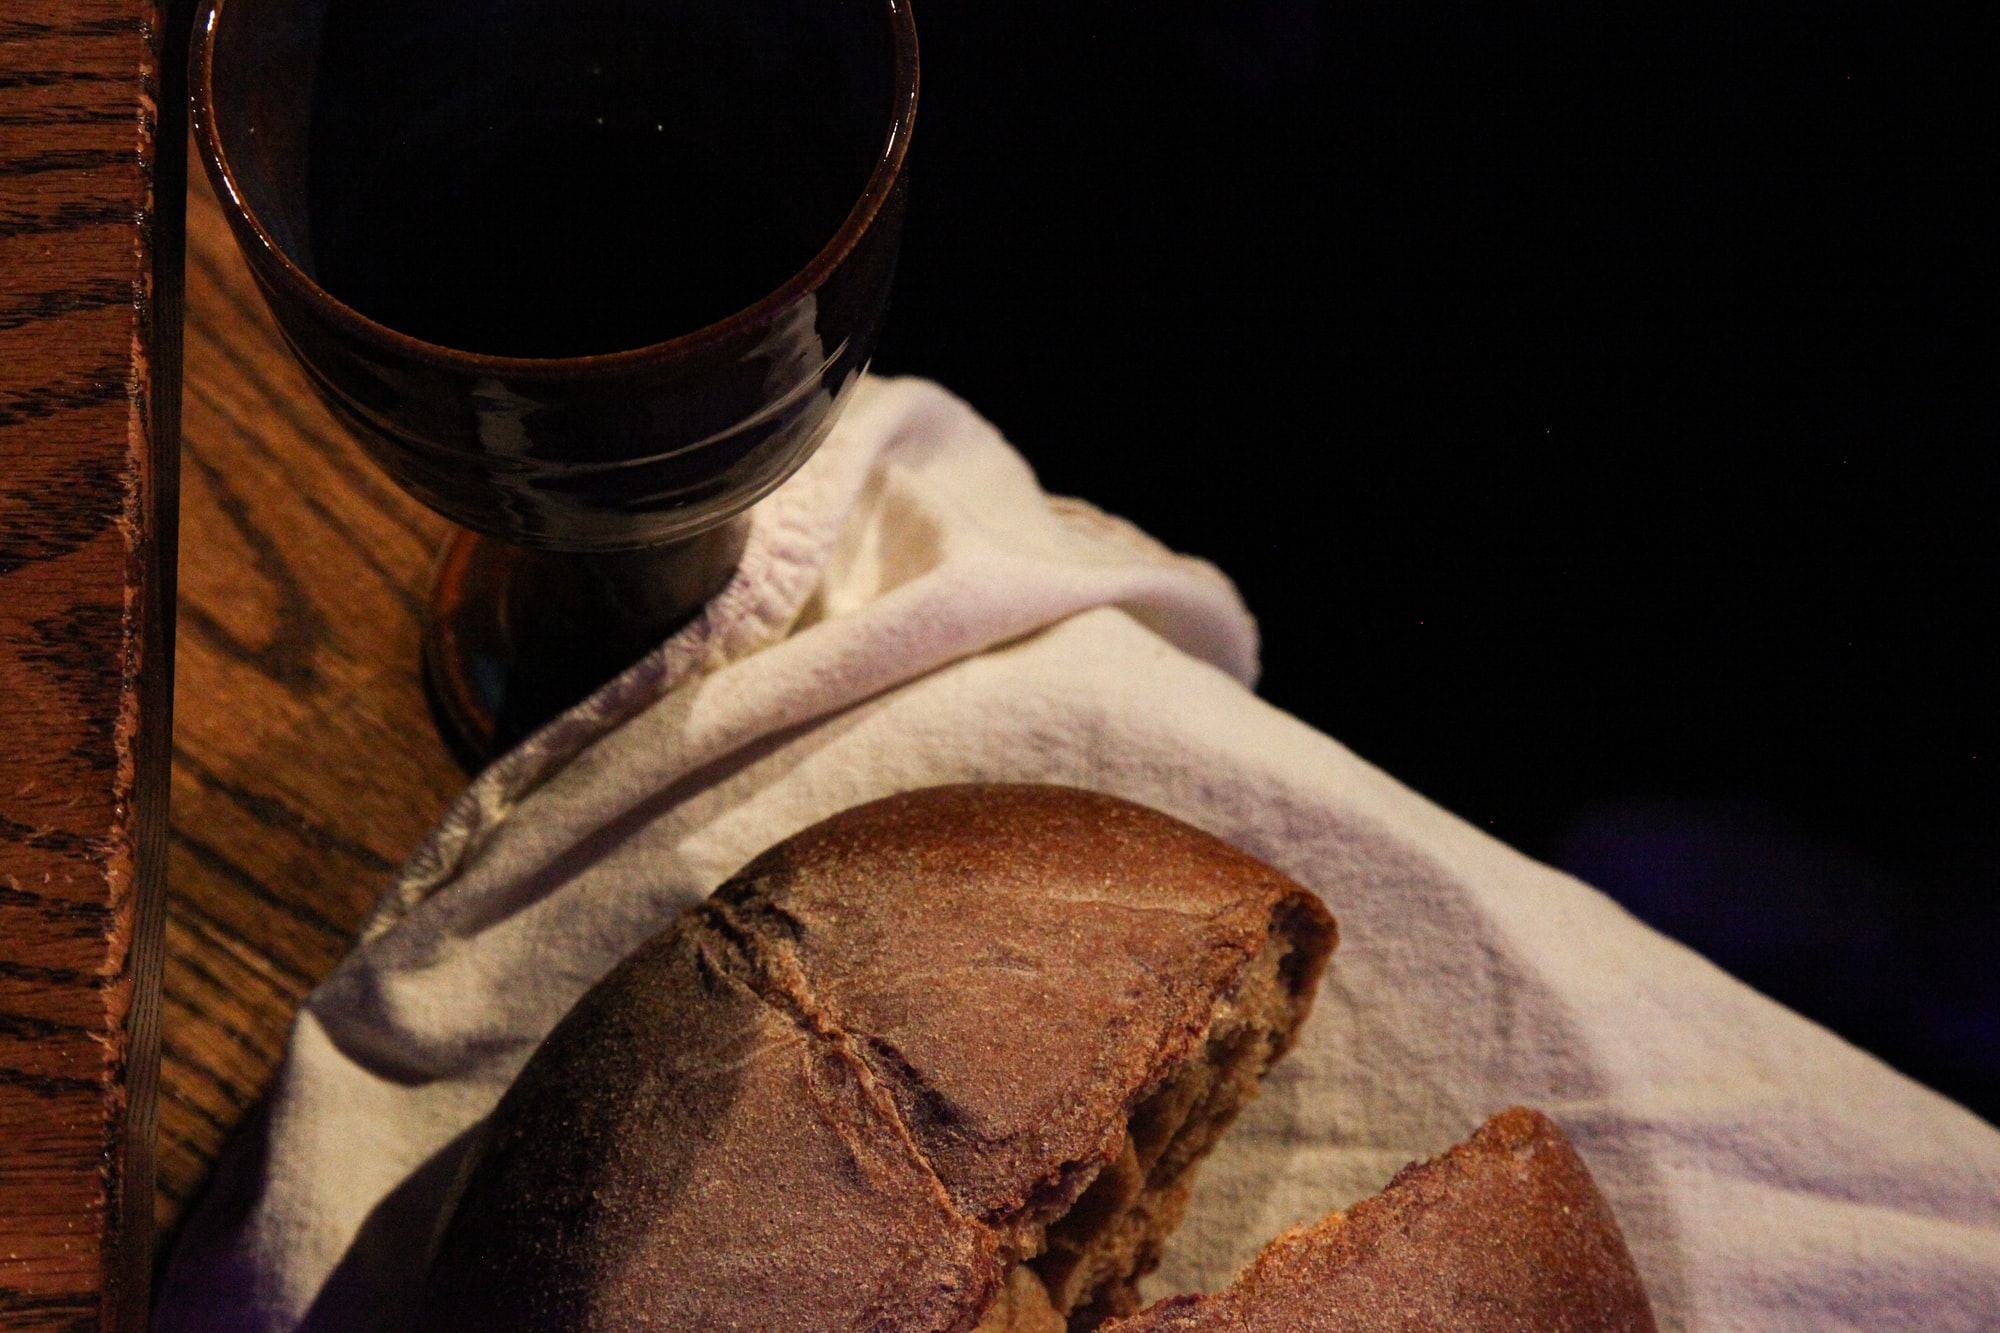 Bread and goblet of juice for communion at church.